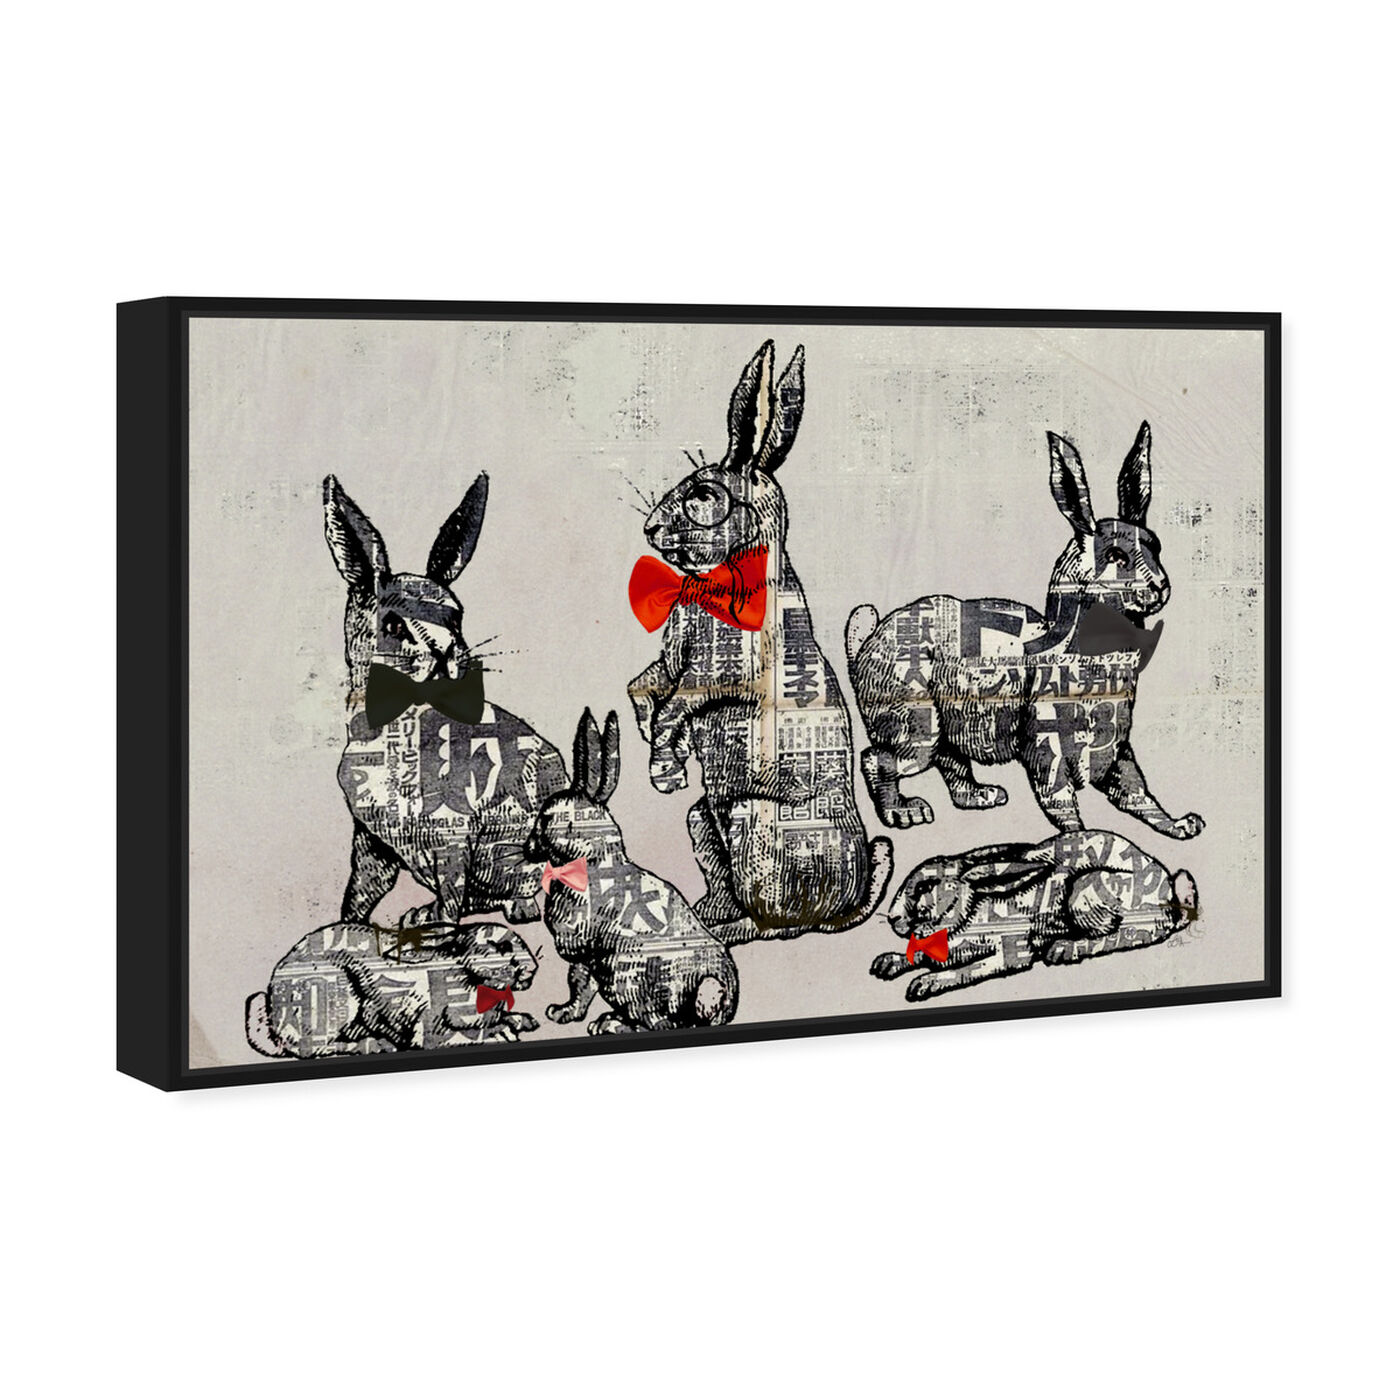 Angled view of Suit and Tie featuring animals and farm animals art.